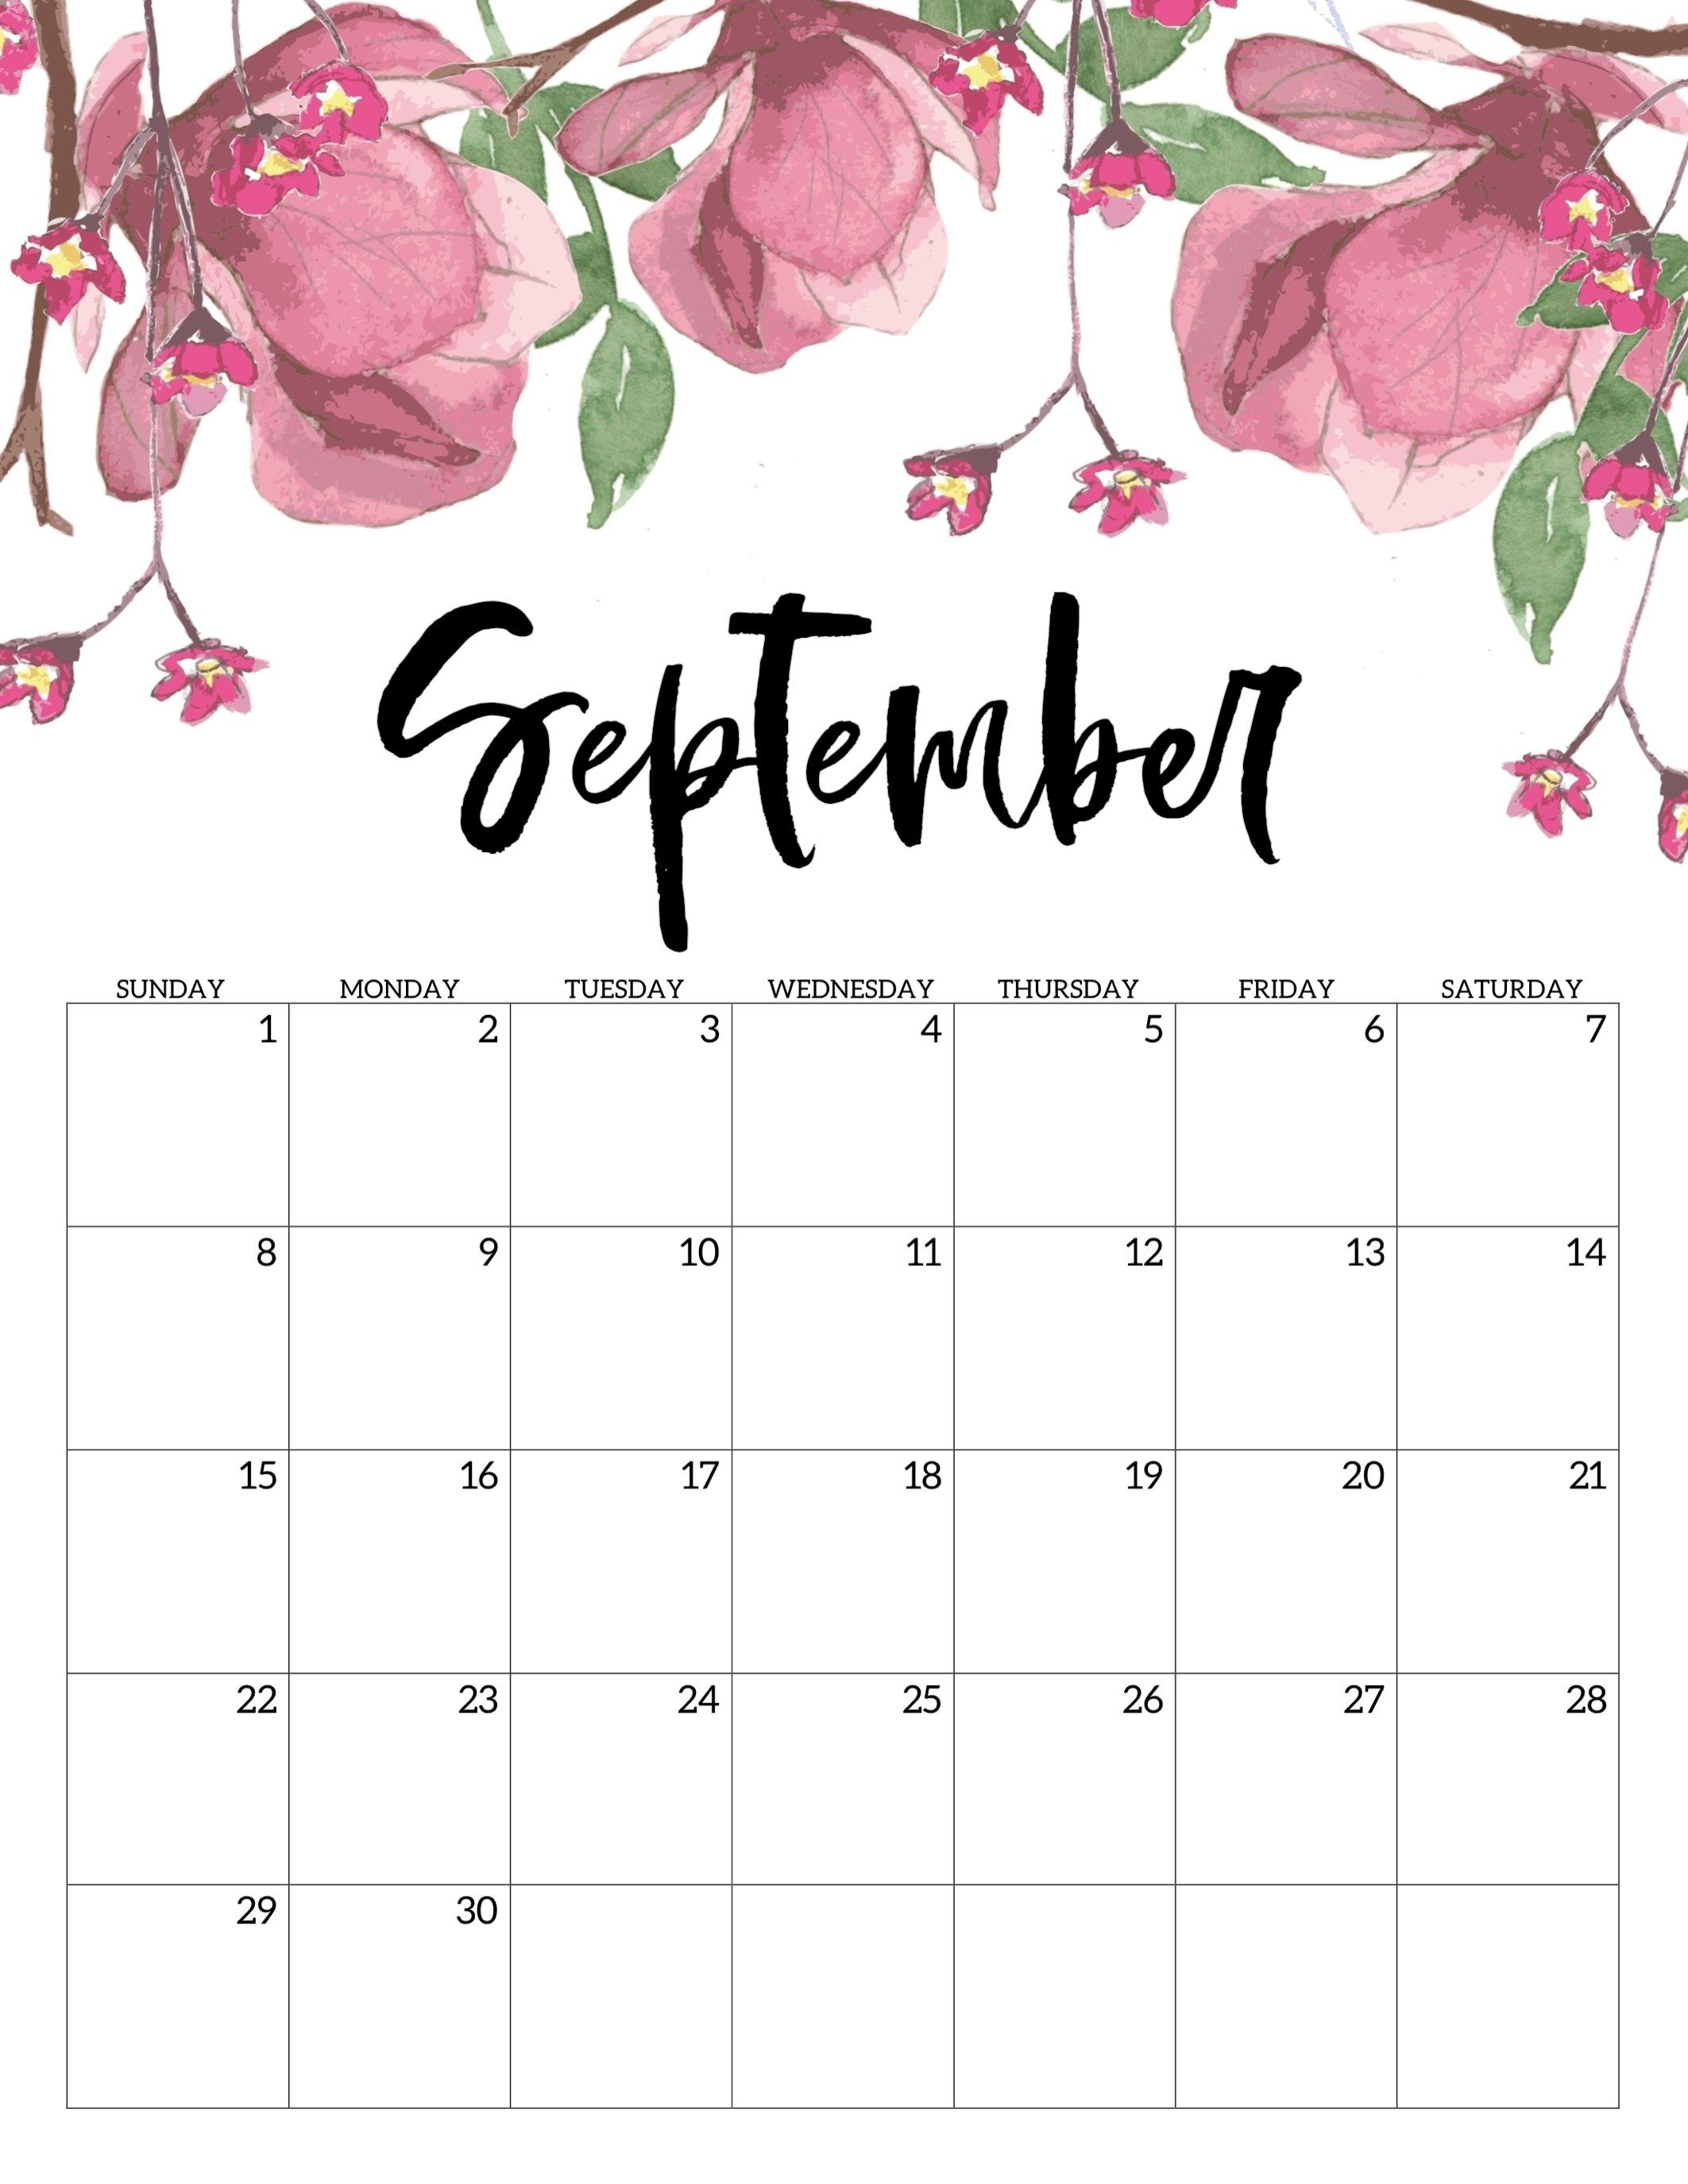 Free Printable Calendar 2019 - Floral - Paper Trail Design Fun within Monthly Calendar Watercolor Floral Printable